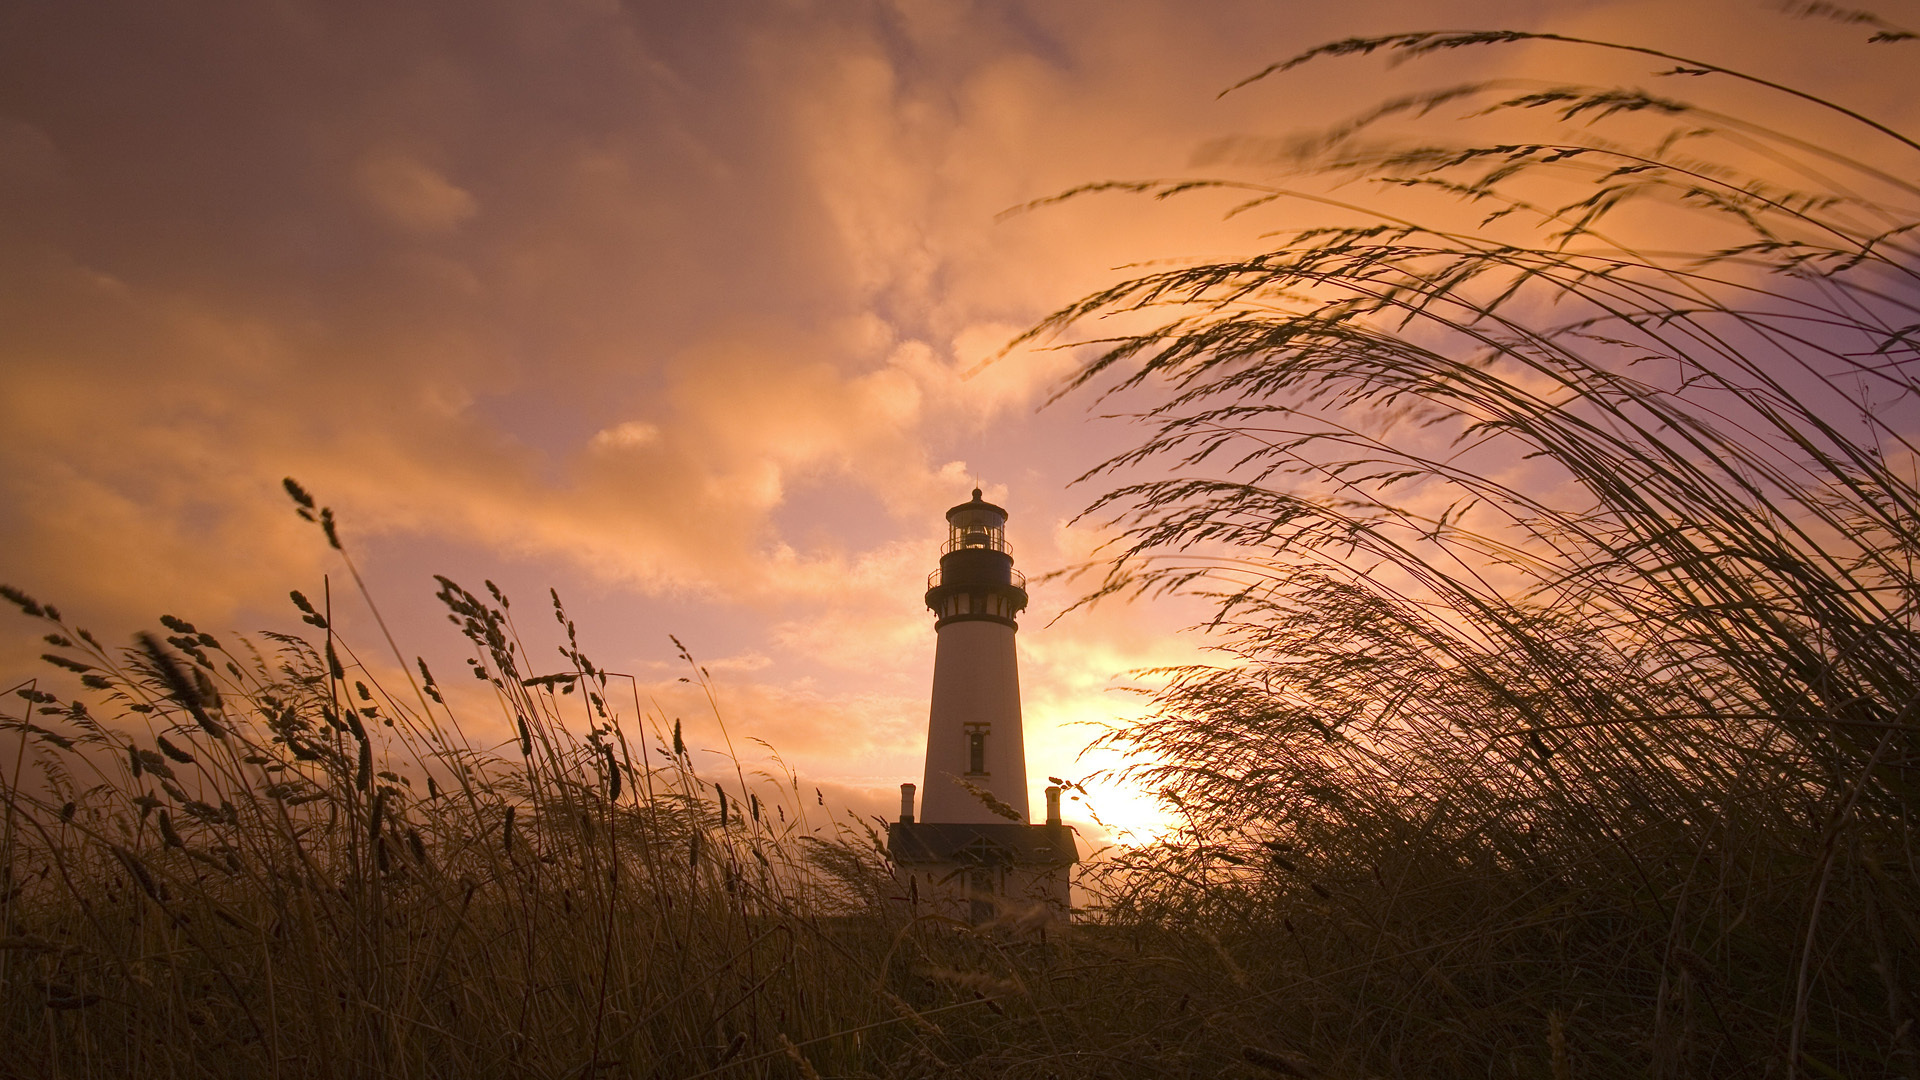 Fall Wallpapers For A Cell Phone Hd Lighthouse Backgrounds Pixelstalk Net